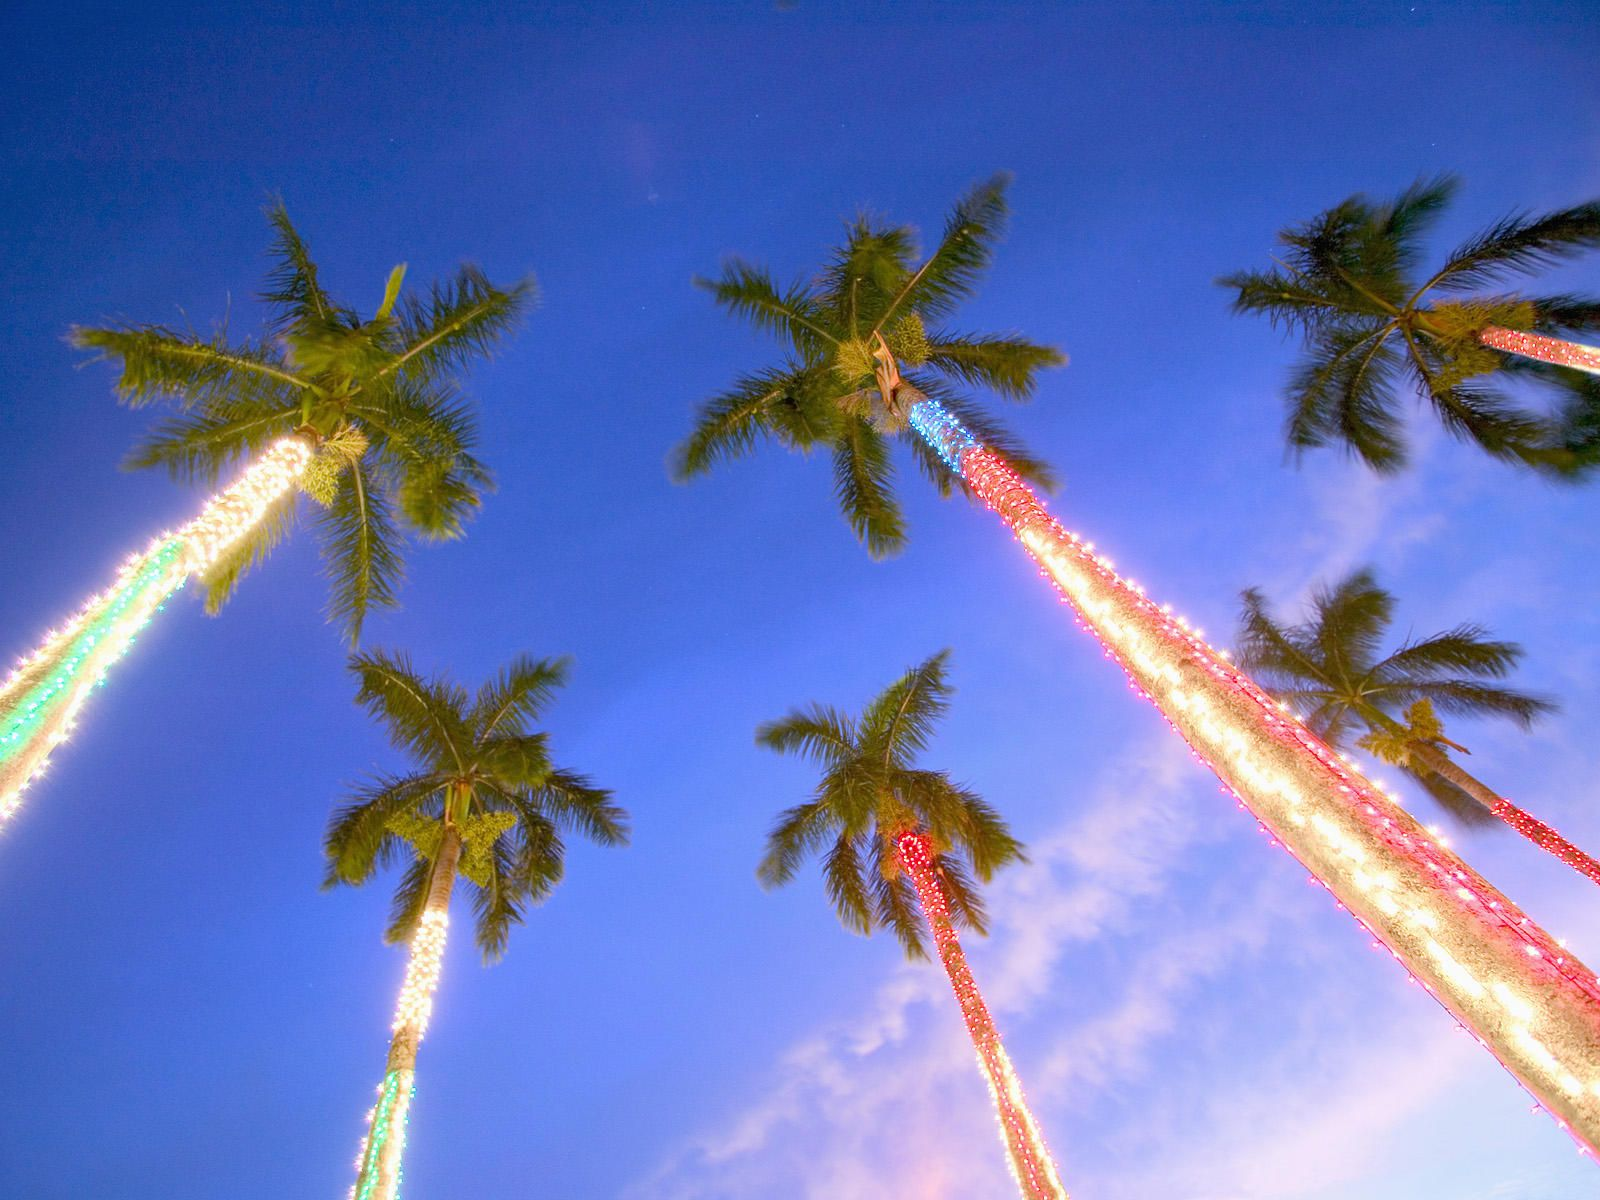 Christmas Palms Hawaii Wallpapers And Stock Photos Beach Christmas Beach Wallpaper Hawaii Christmas